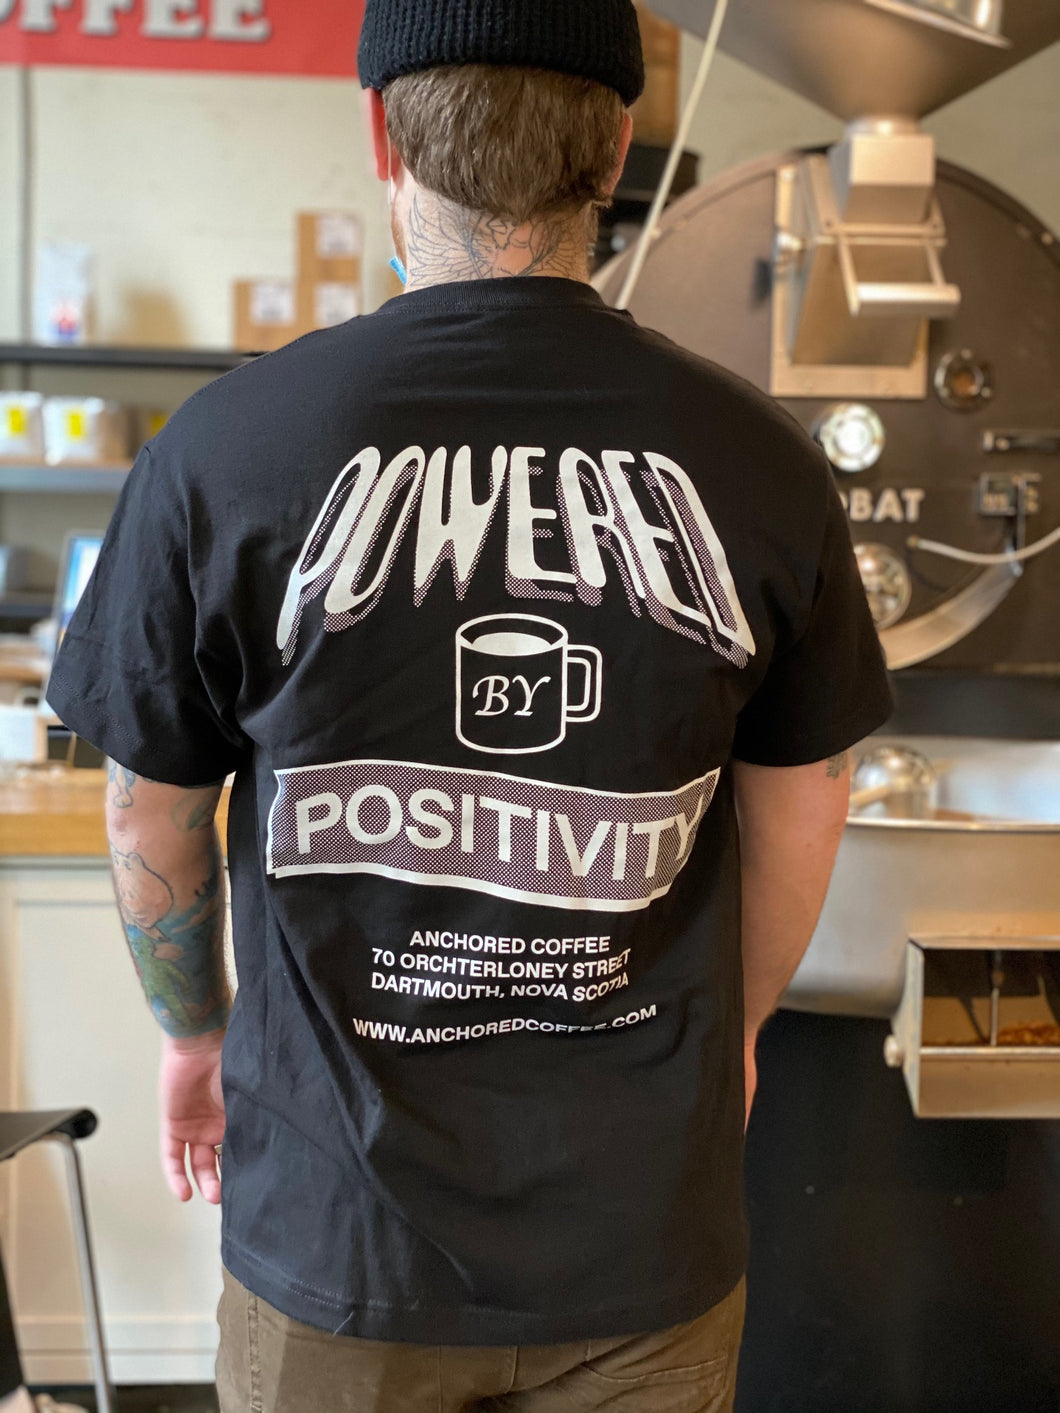 Powered by Positivity t-shirt-Black